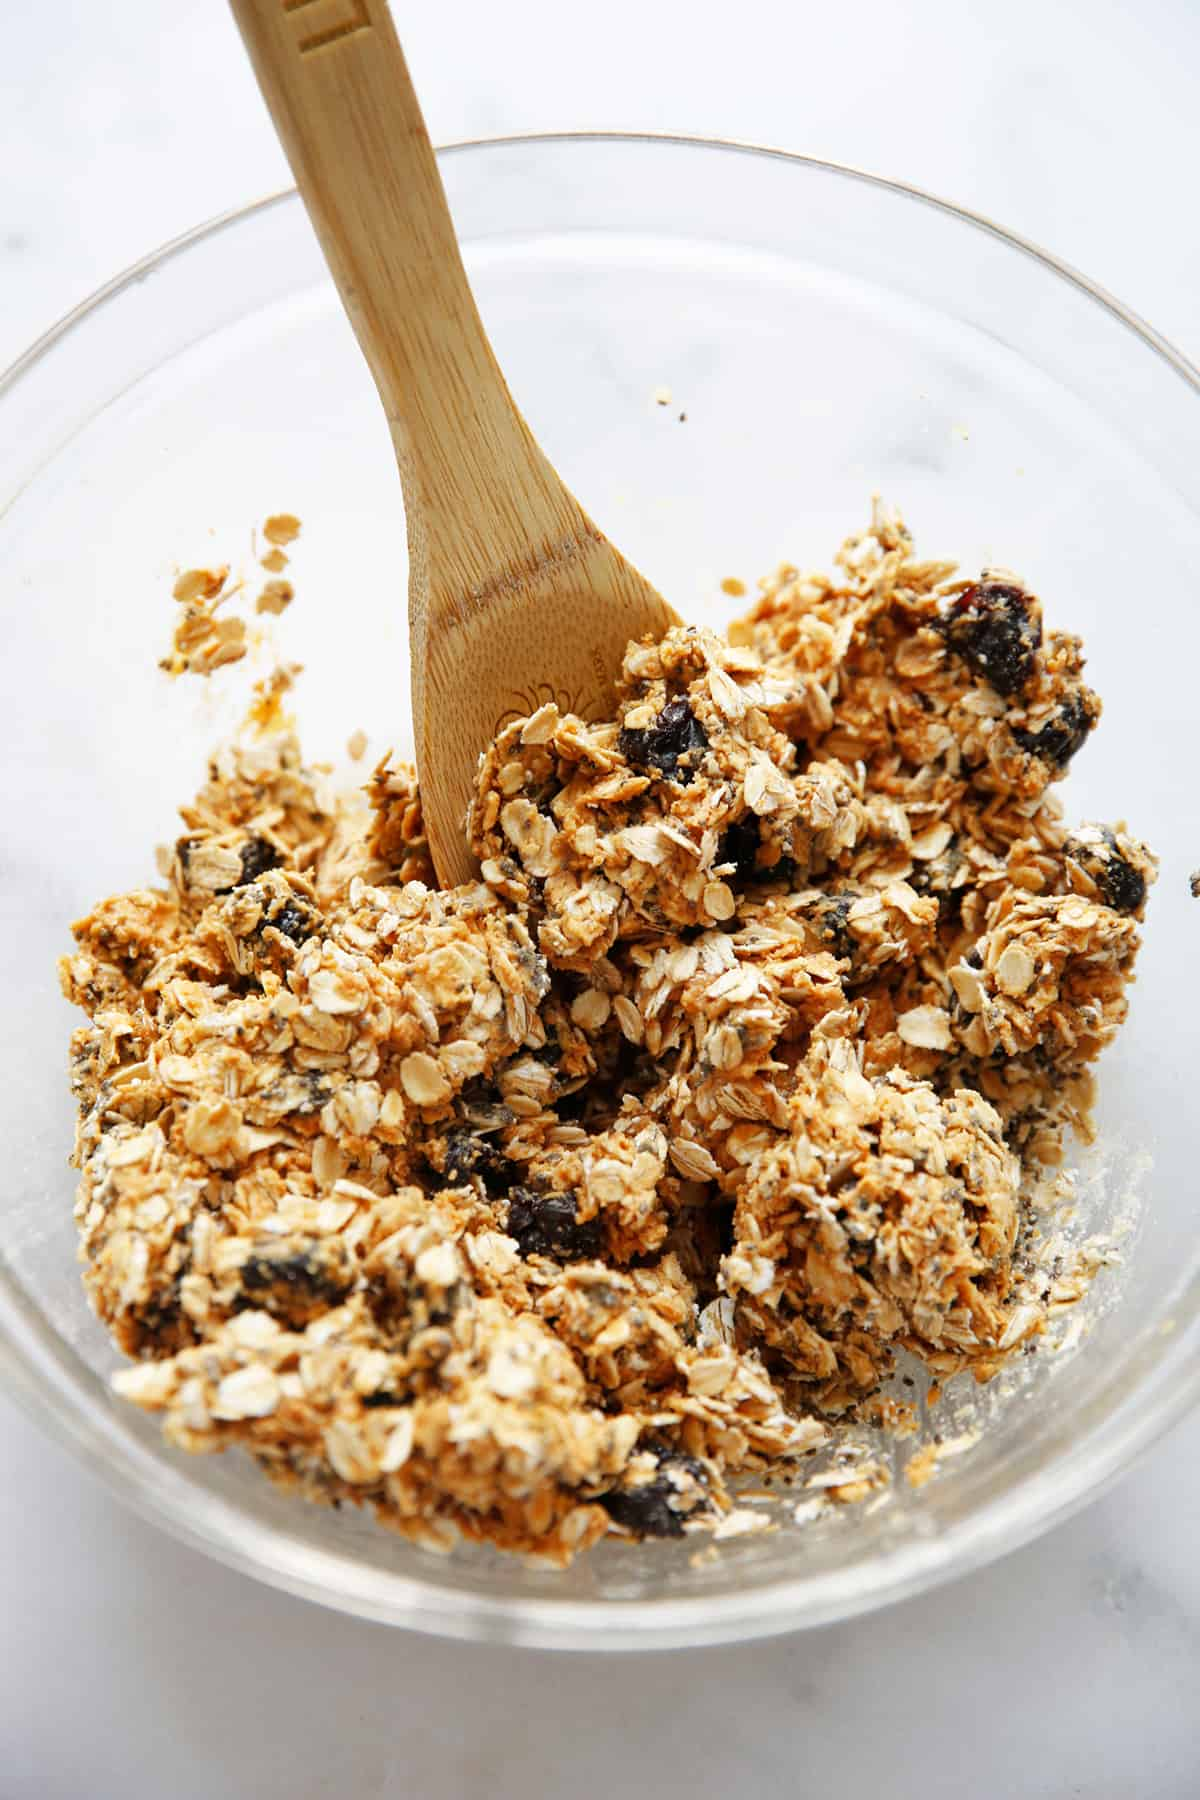 ingredients for peanut butter oatmeal balls in a bowl